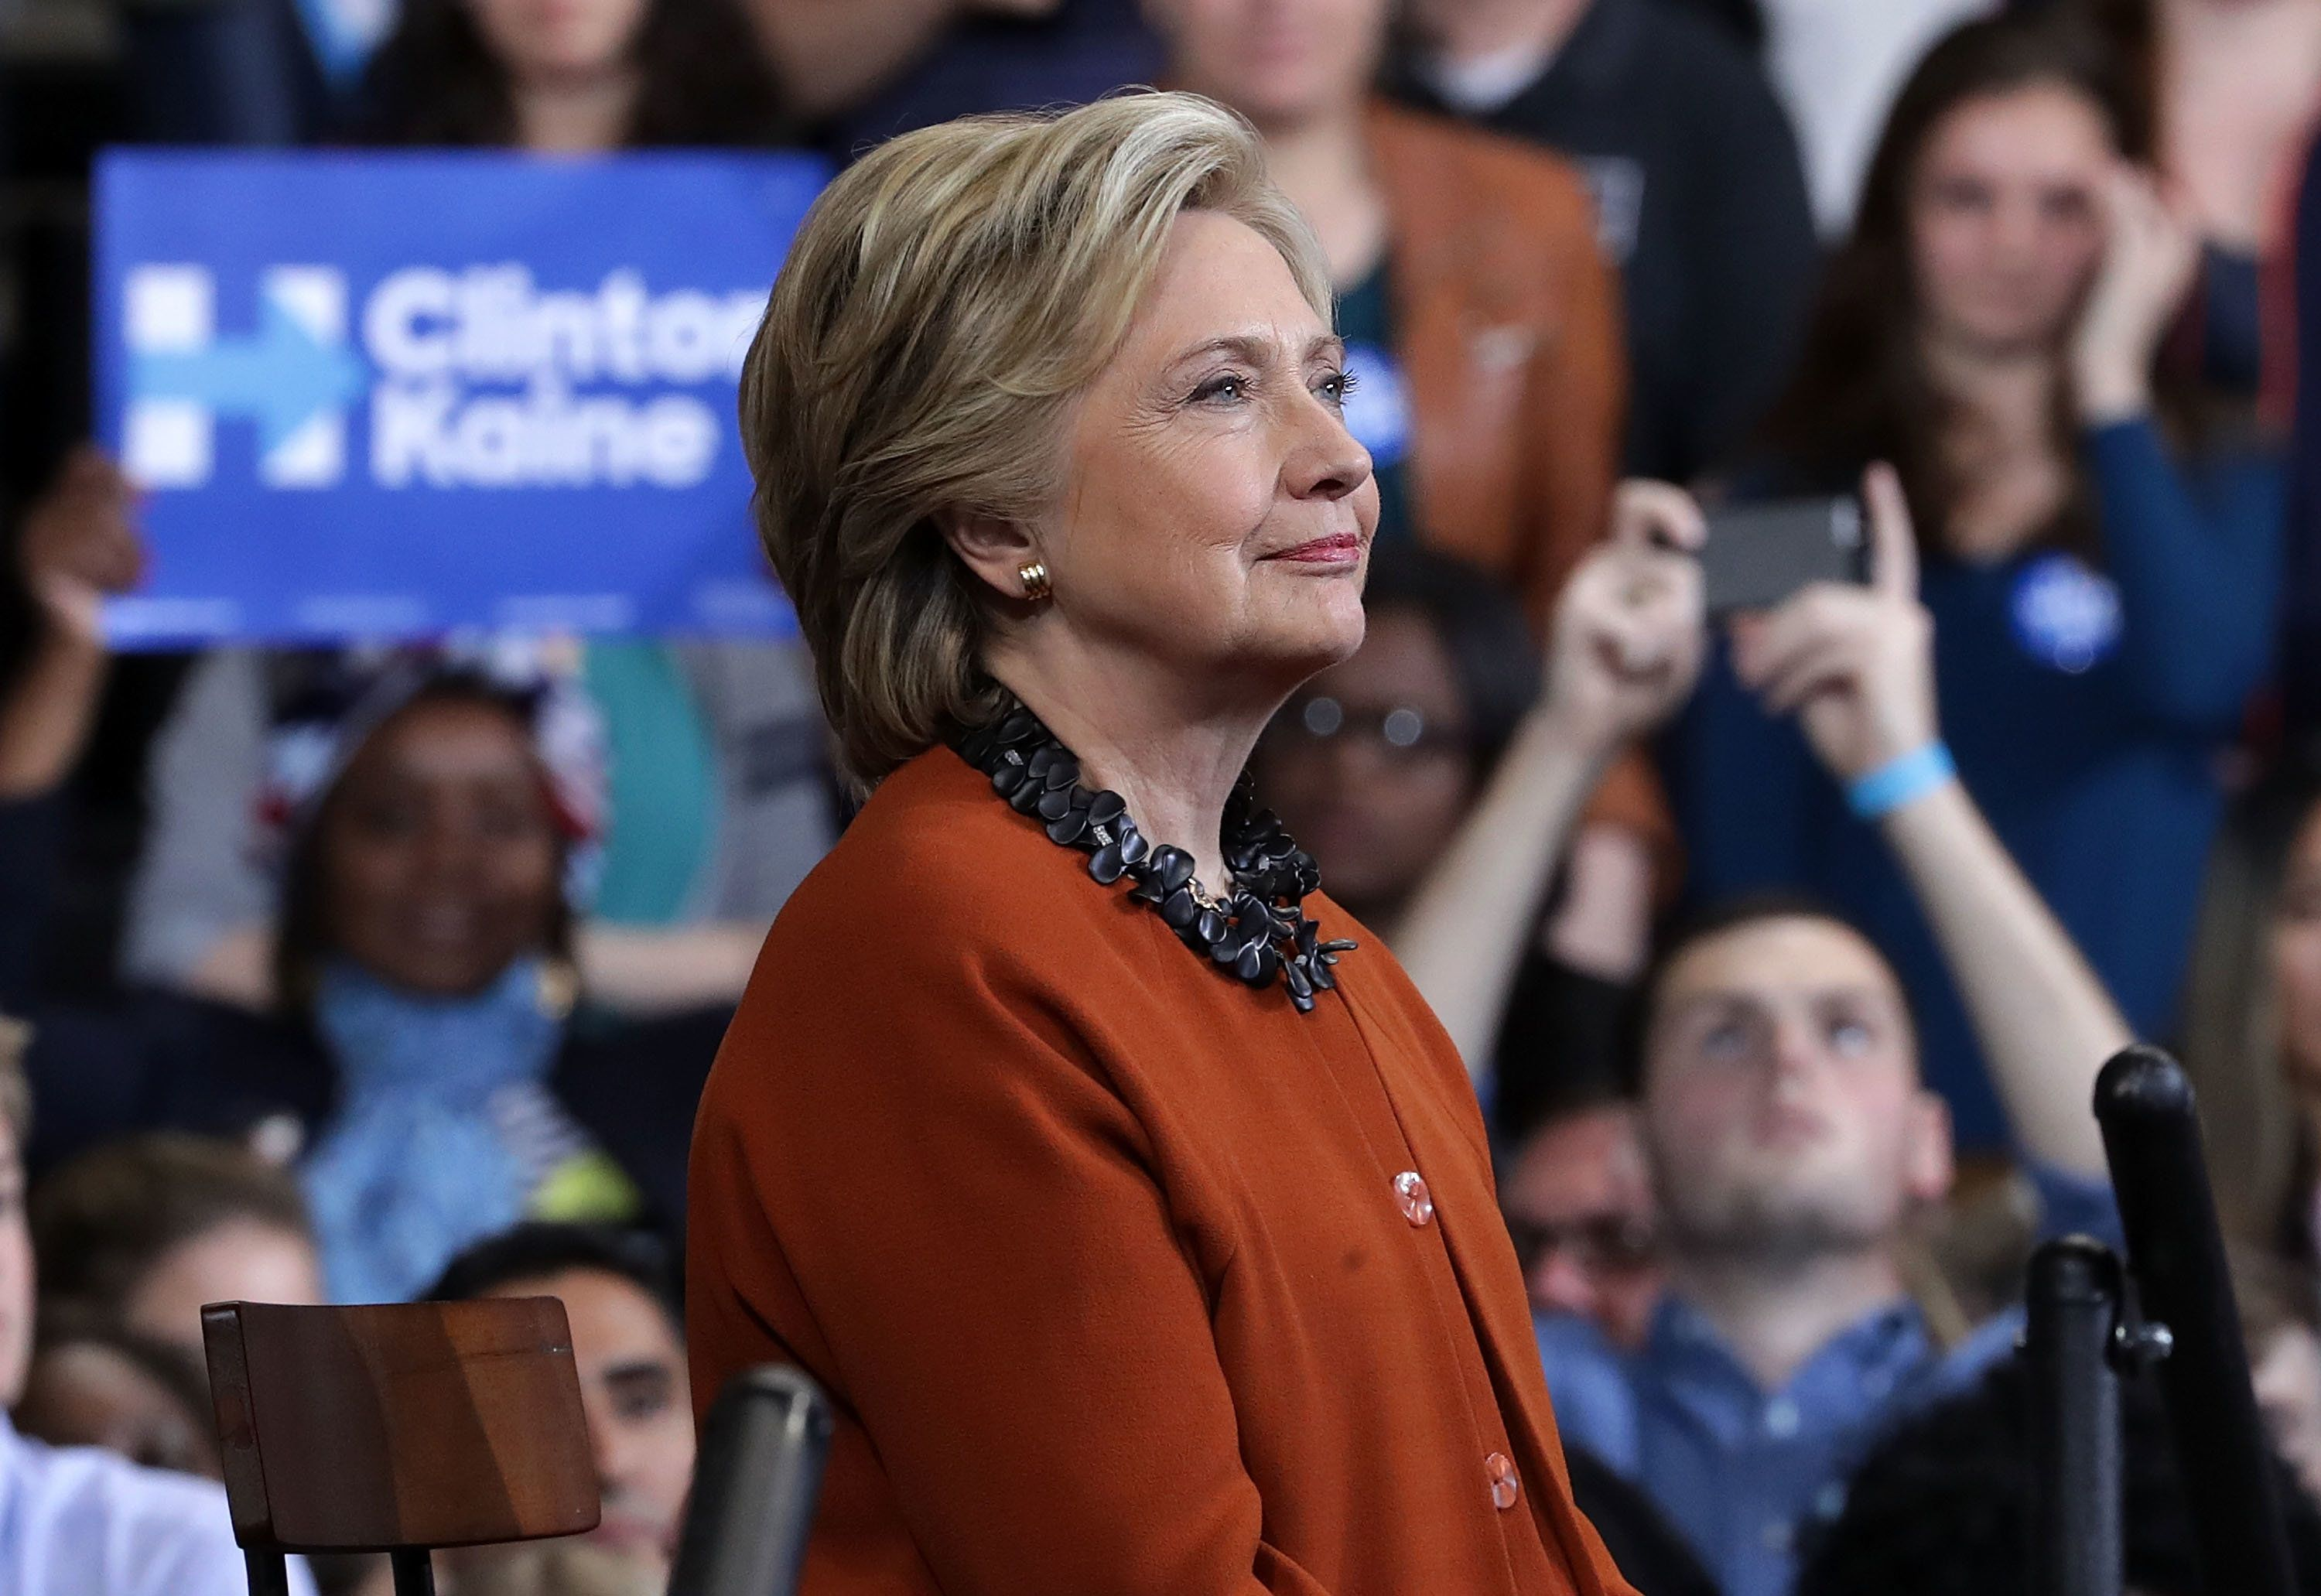 WINSTON-SALEM, NC - OCTOBER 27:  Democratic presidential candidate Hillary Clinton listens during a campaign event at the Lawrence Joel Veterans Memorial Coliseum October 27, 2016 in Winston-Salem, North Carolina. U.S. first lady Michelle Obama joined Clinton for the first time to campaign for the presidential election.  (Photo by Alex Wong/Getty Images)